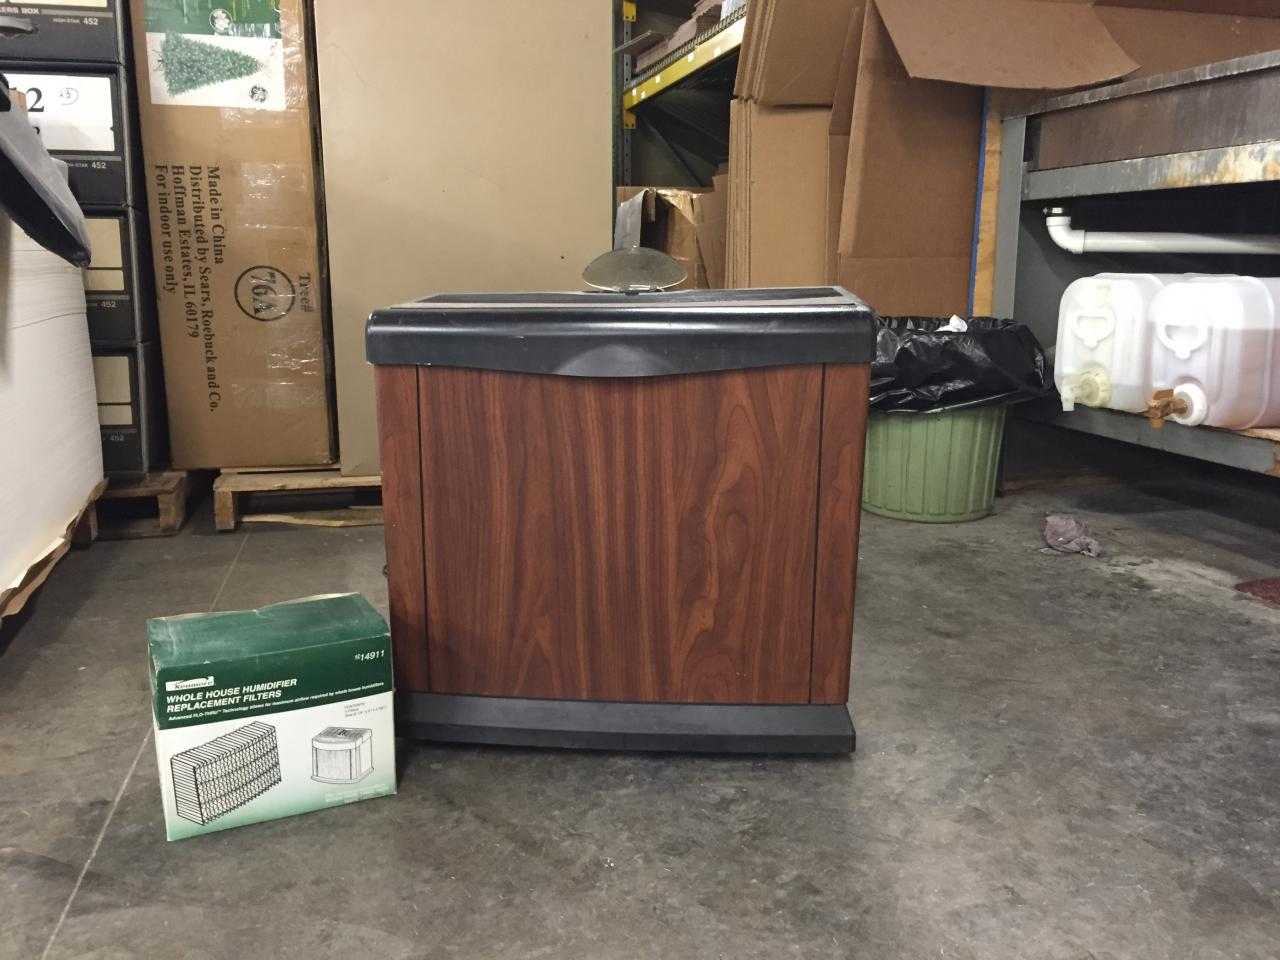 kenmore humidifier filters. kenmore quiet comfort 13 humidifier with filters - buffalo, ny